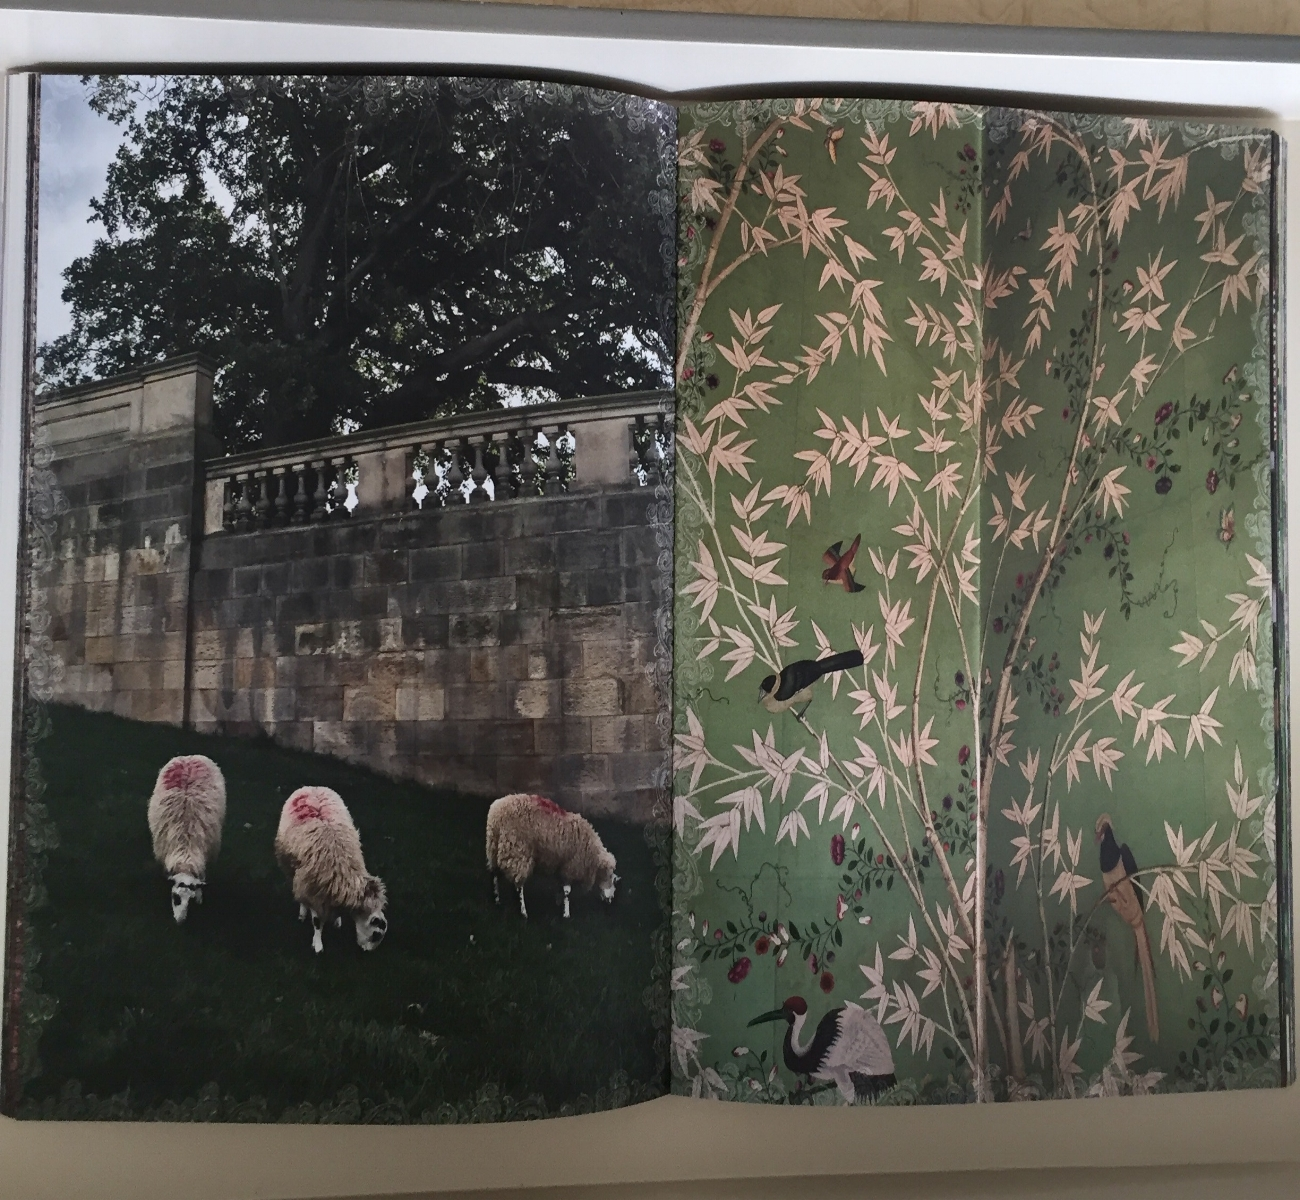 Chatsworth House sheep grazing juxtaposed with a custom hand painted Chinoiserie wall panel